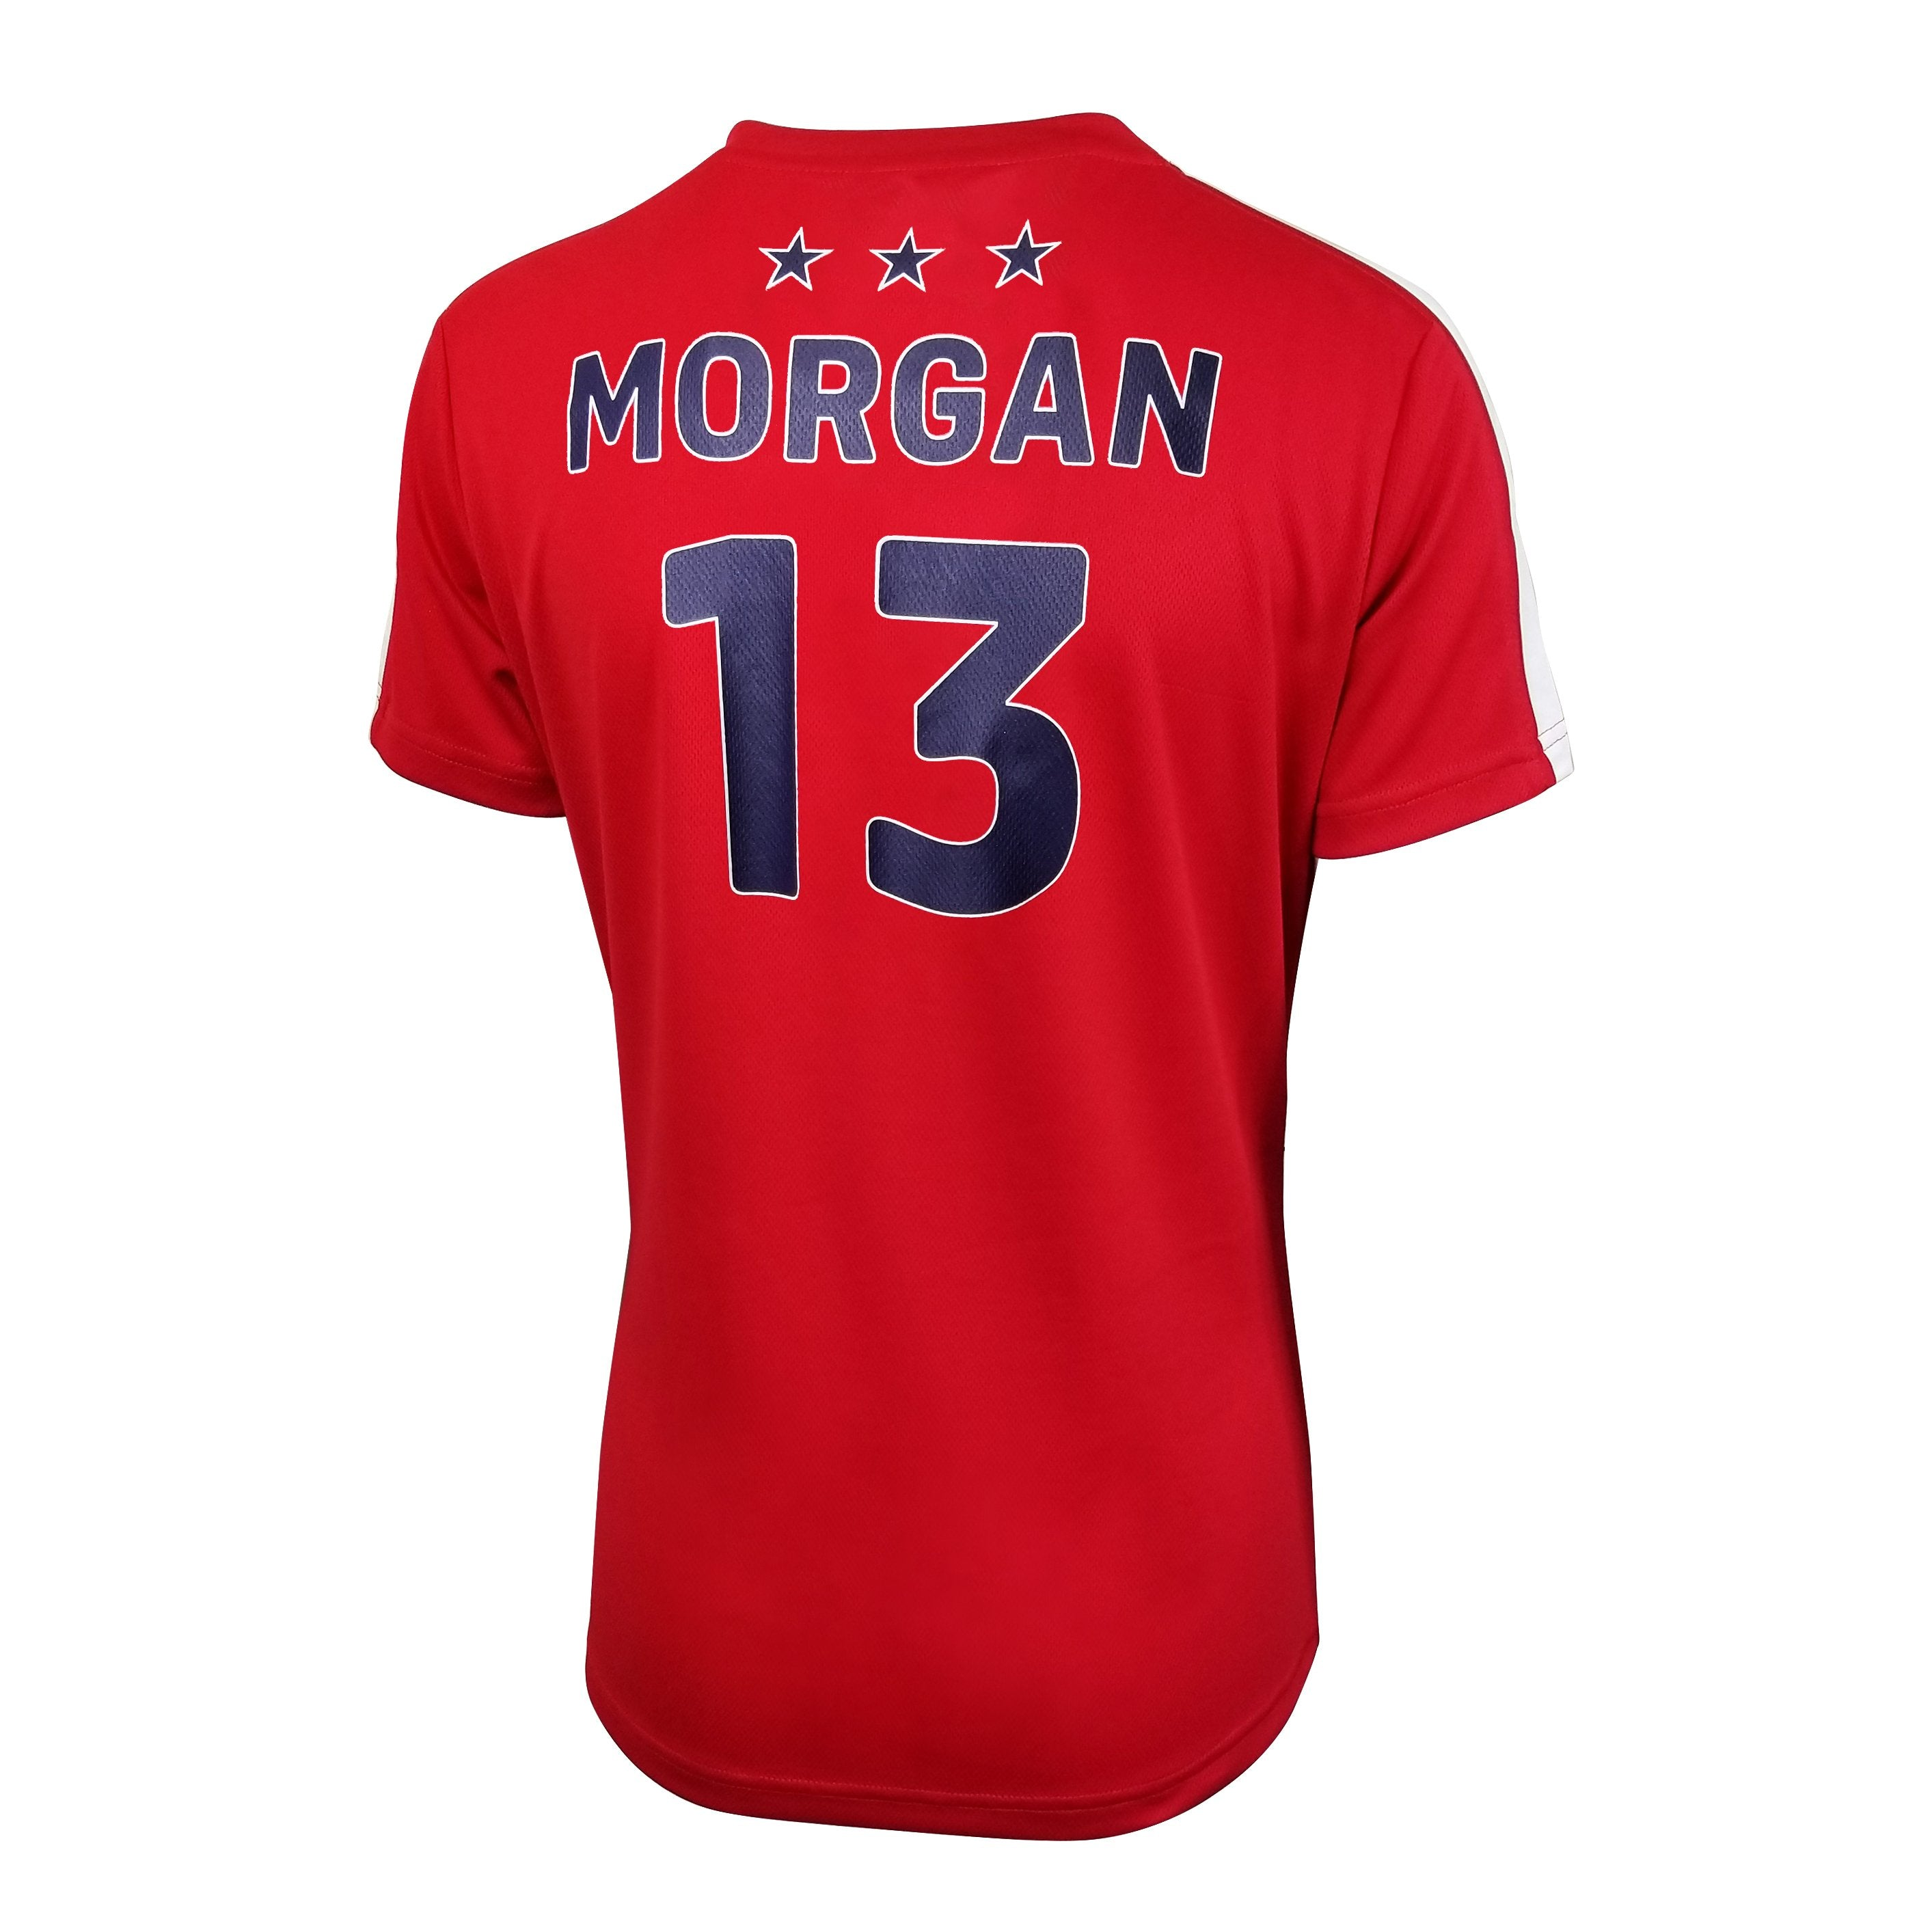 U.S. SOCCER ALEX MORGAN WOMEN'S STADIUM POLYMESH TEE